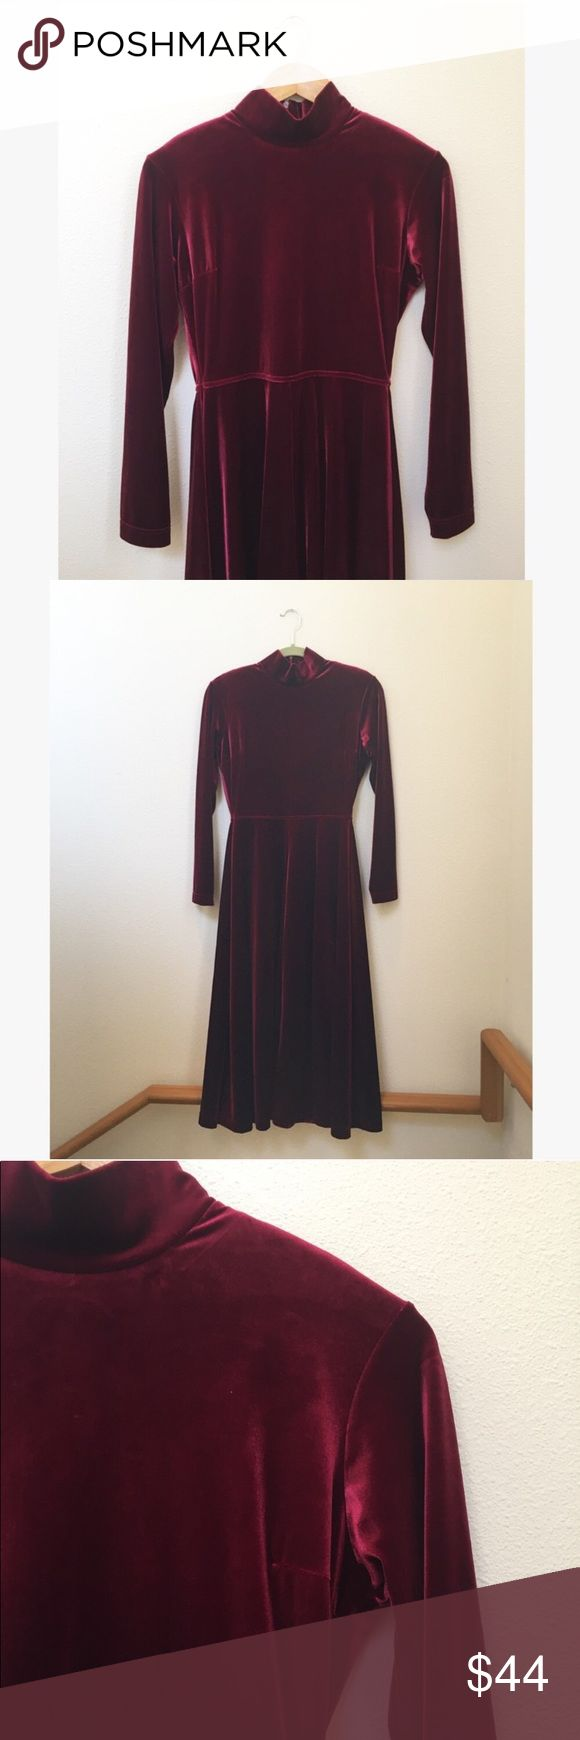 """Vintage Velvet Midi Mock Turtleneck Dress Vintage Red Velvet Midi Mock Turtleneck Dress by Talbots. Deep Bordeaux wine red with super soft and stretchy polyester/spandex blend. Stunning midi silhouette with fit and flare waist. Long sleeves and zip back with shoulder pads, easily removable, happy to snip them on request. Excellent vintage condition. Perfect for a party or Valentine's. Vintage size petite, fits like a Size S, please refer to approximate measurements:  46"""" long, 18"""" pit to…"""